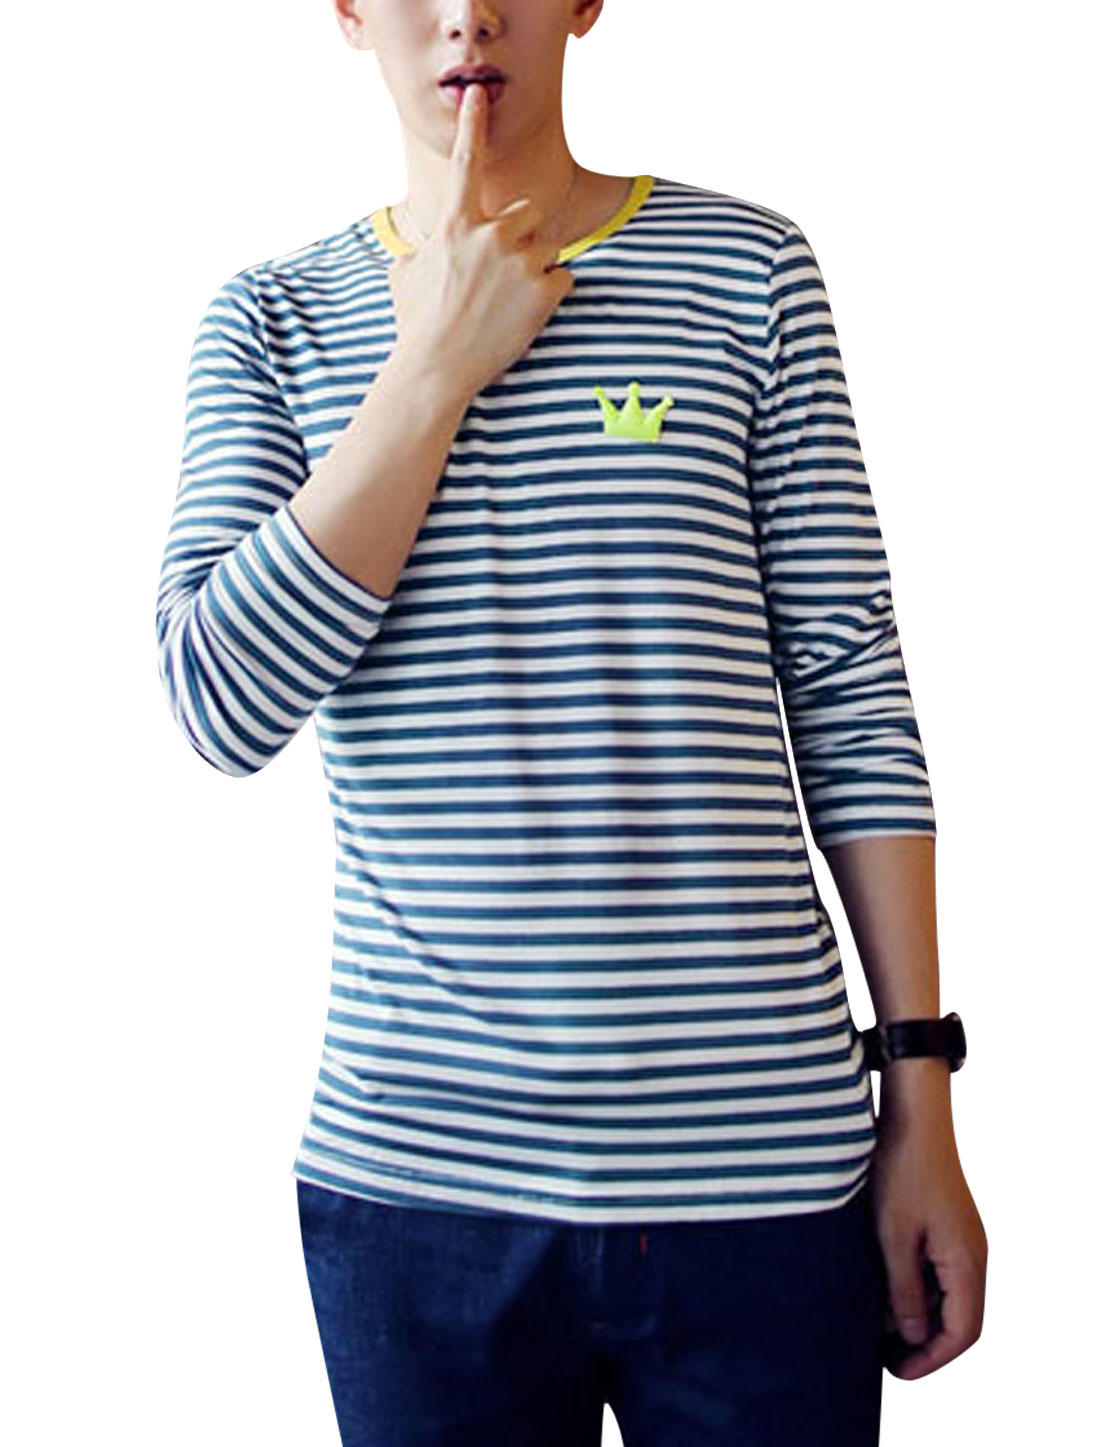 Men Round Neck Stripes Pattern Casual Top Shirt w Brooches Navy Blue M